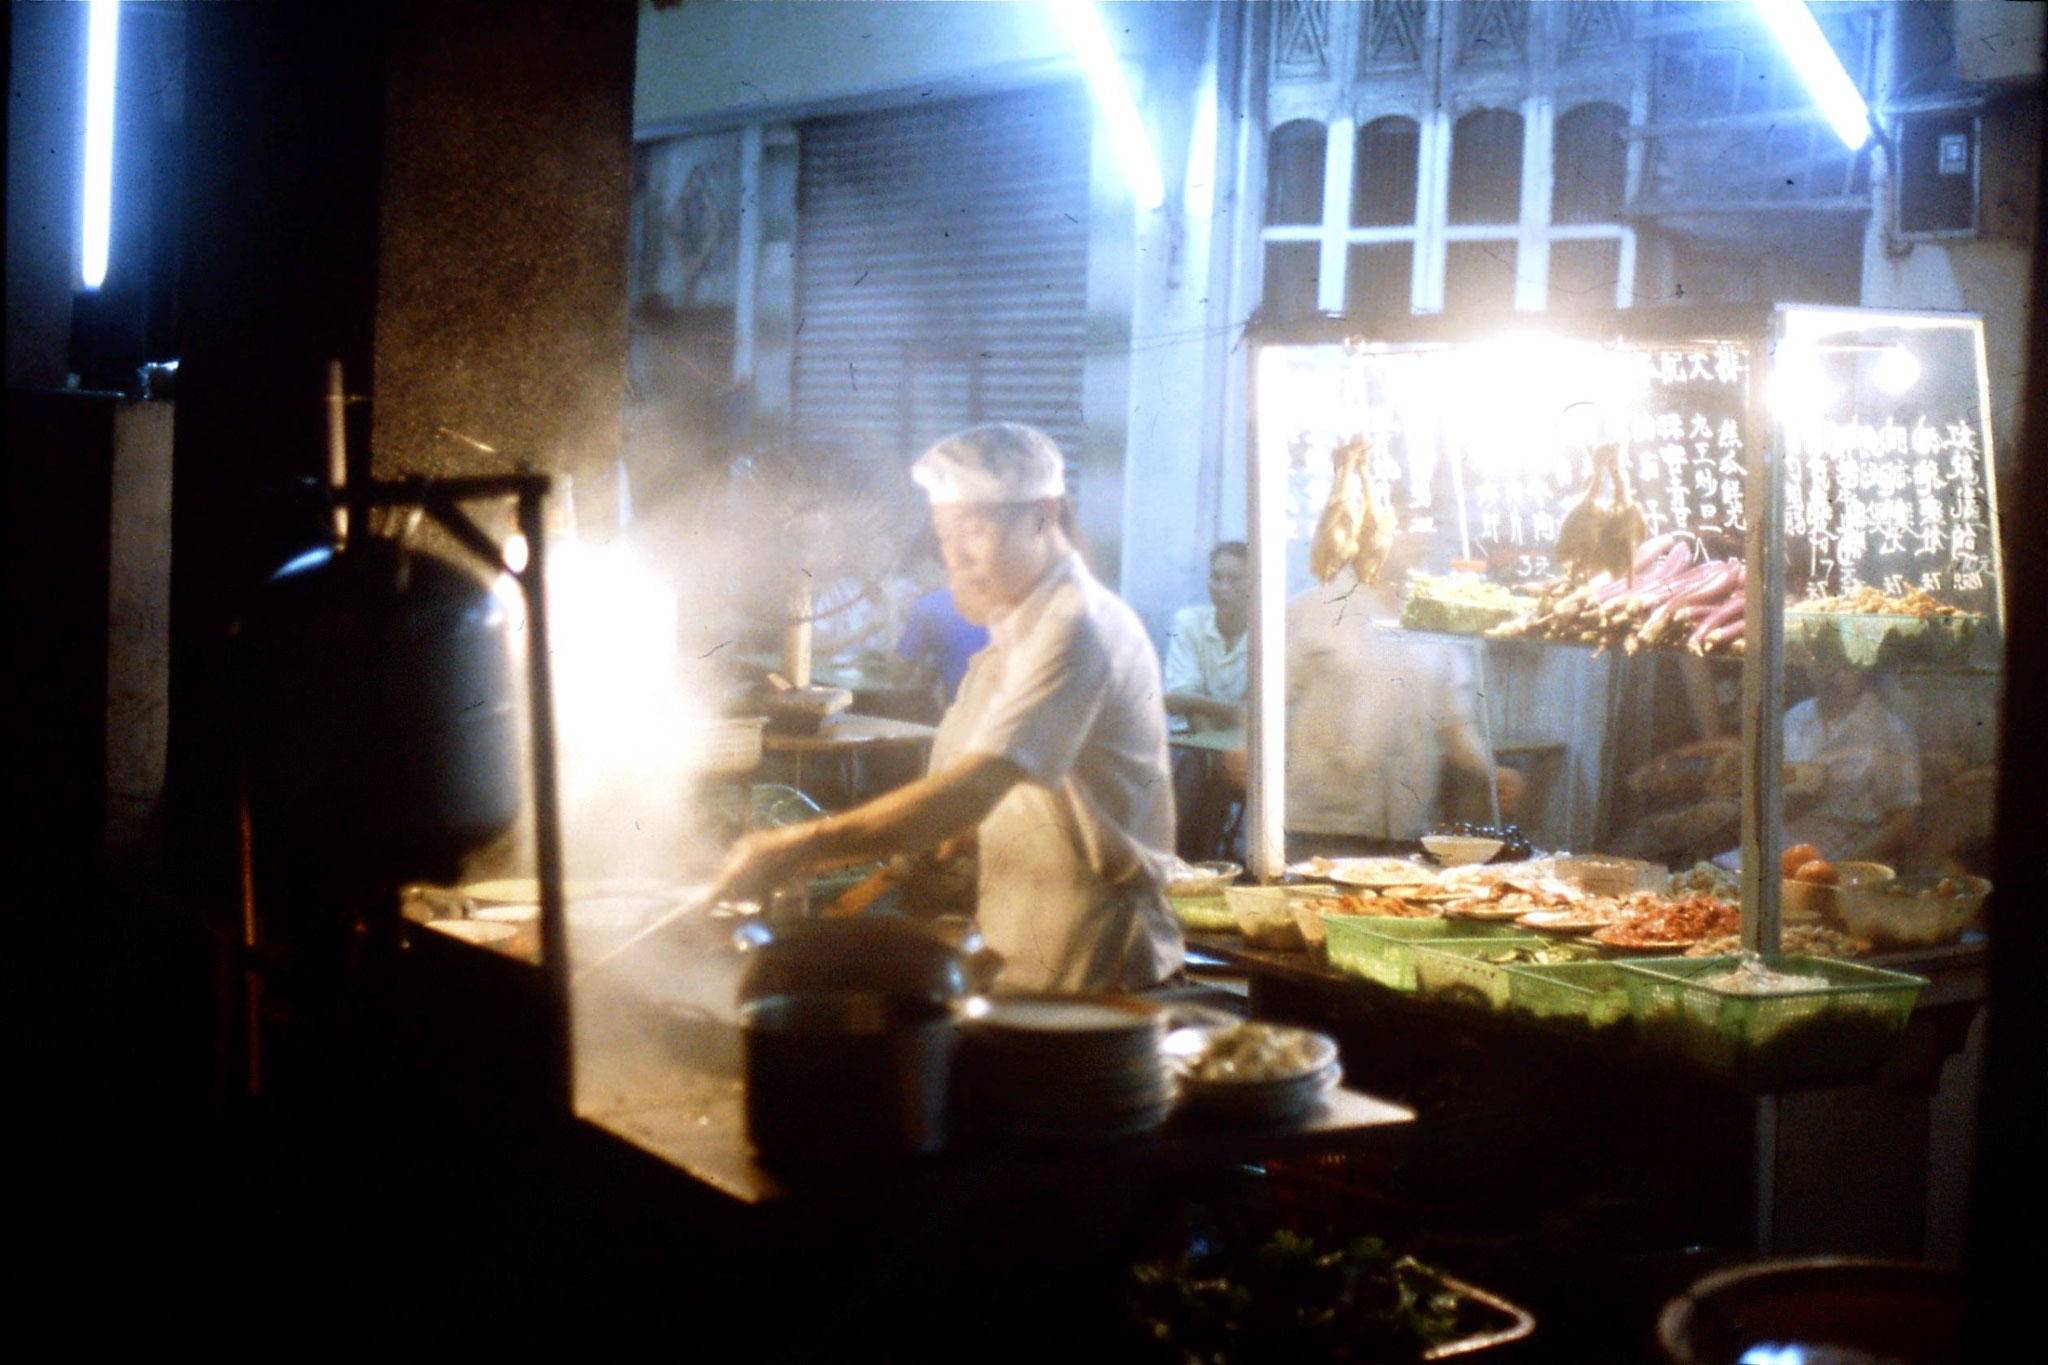 18/5/1989: 9: Guangzhou evening food stall